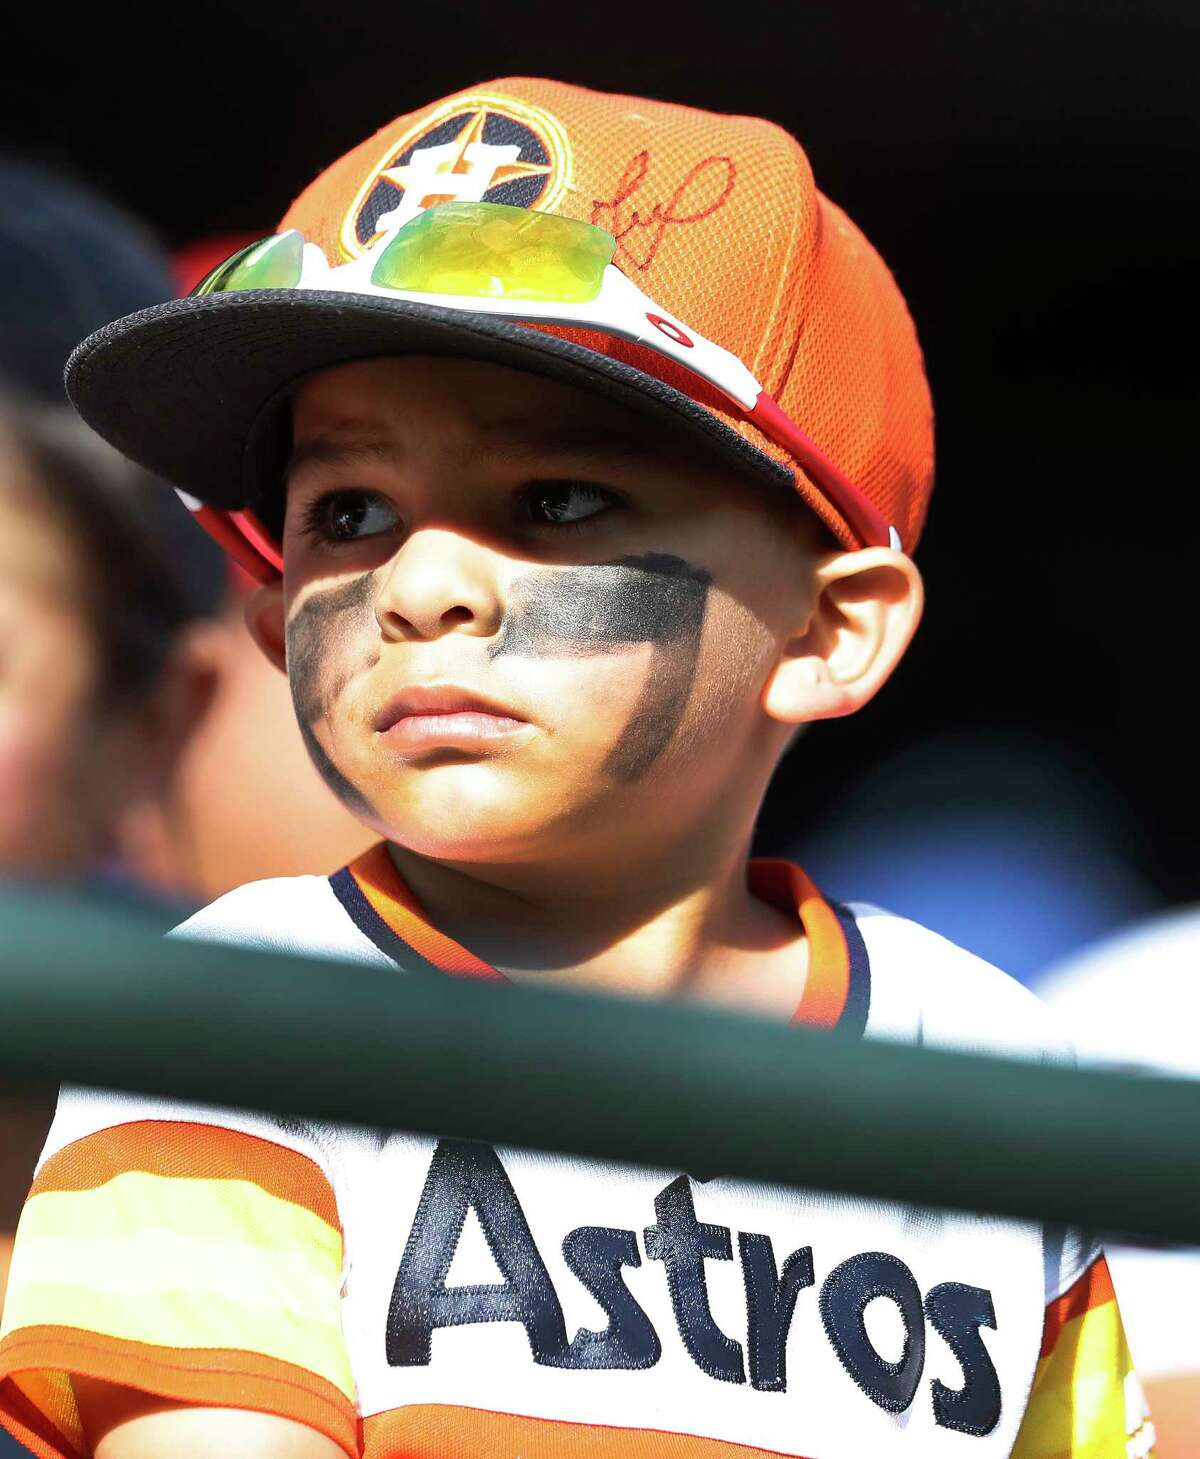 Davian Mendoza, 3, of Odessa, watches the game with his Astros gear and eye black on in the eighth inning of an MLB baseball game at Globe Life Park, Saturday, March 31, 2018, in Arlington.